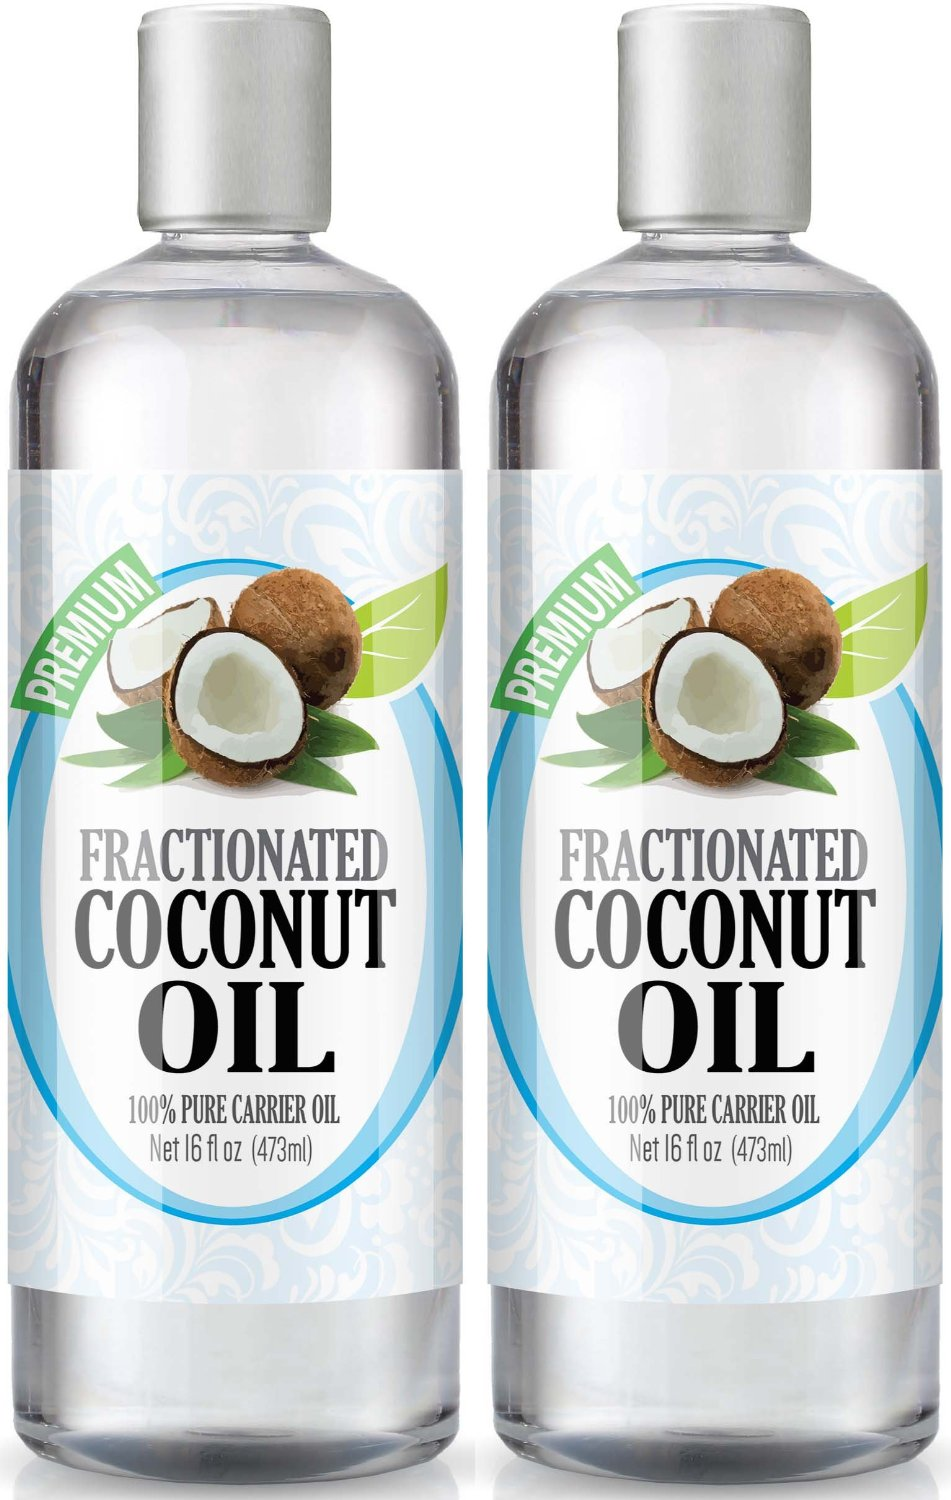 Fractionated Coconut Oil 16oz - 100% Pure, Premium Therapeutic Grade - Best Base or Carrier Oil for Aromatherapy, Essential Oil, and Massage - Numerous Hair & Skin Benefits and Perfect for use in Creams, Shampoos, And Other Home Recipes - Large 16 ounce size - Pack of 2